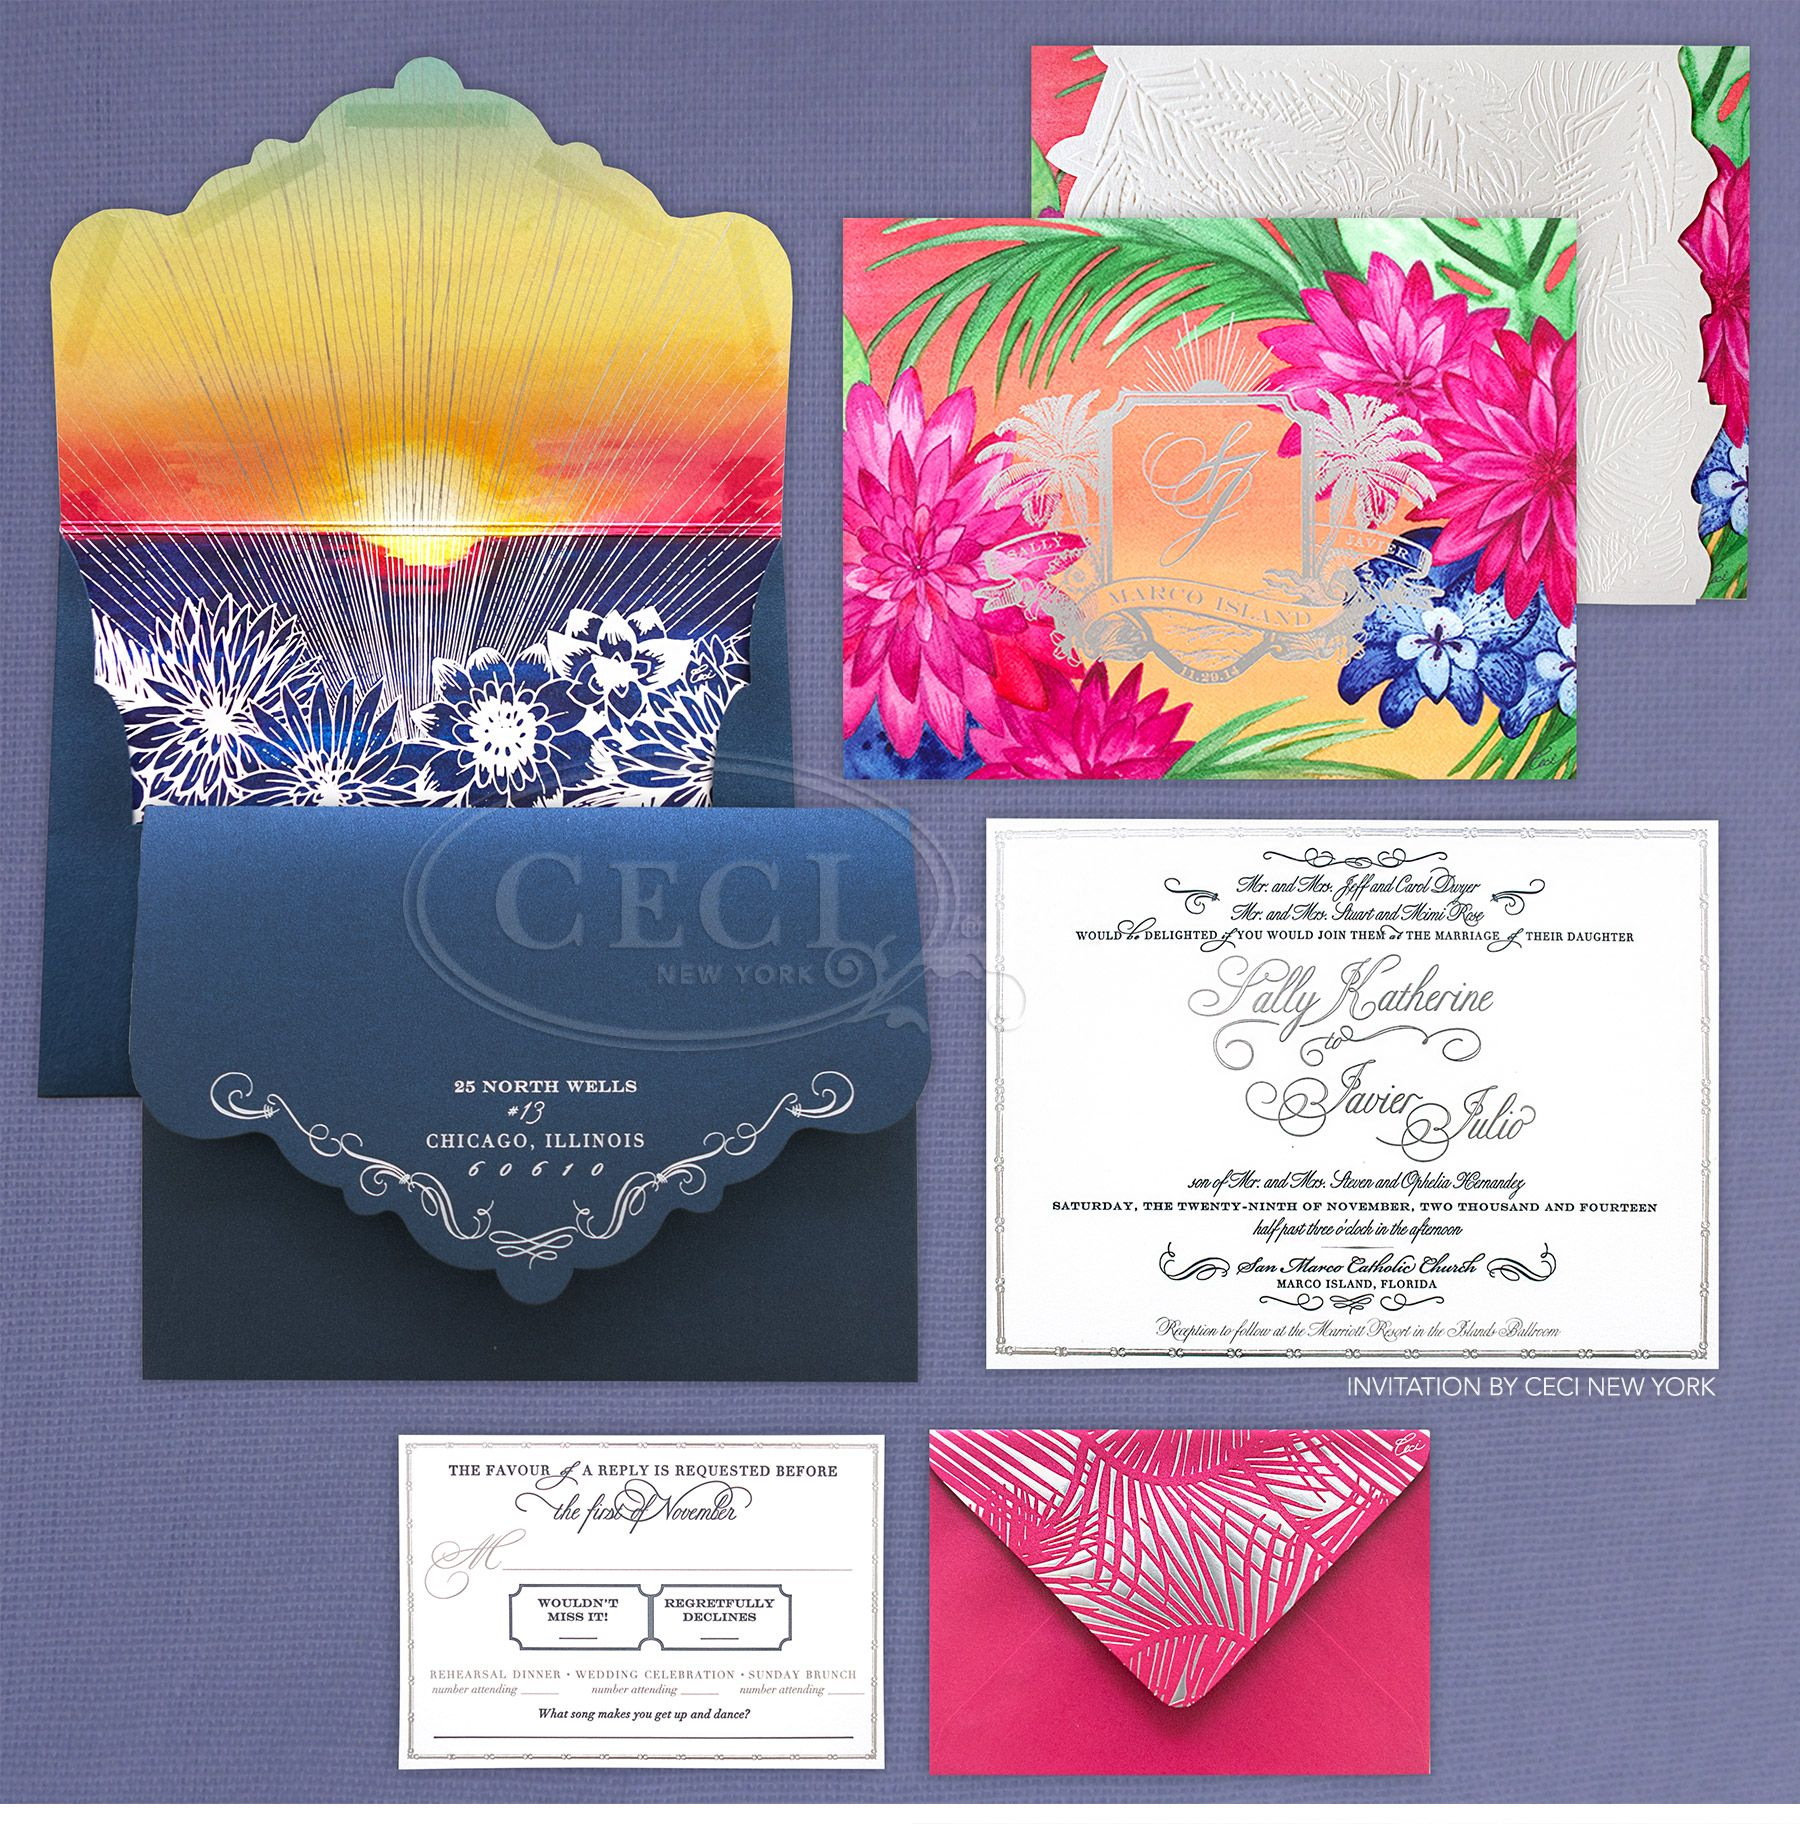 I Love The Silver Foil Against The Colorful Tropical Patterns